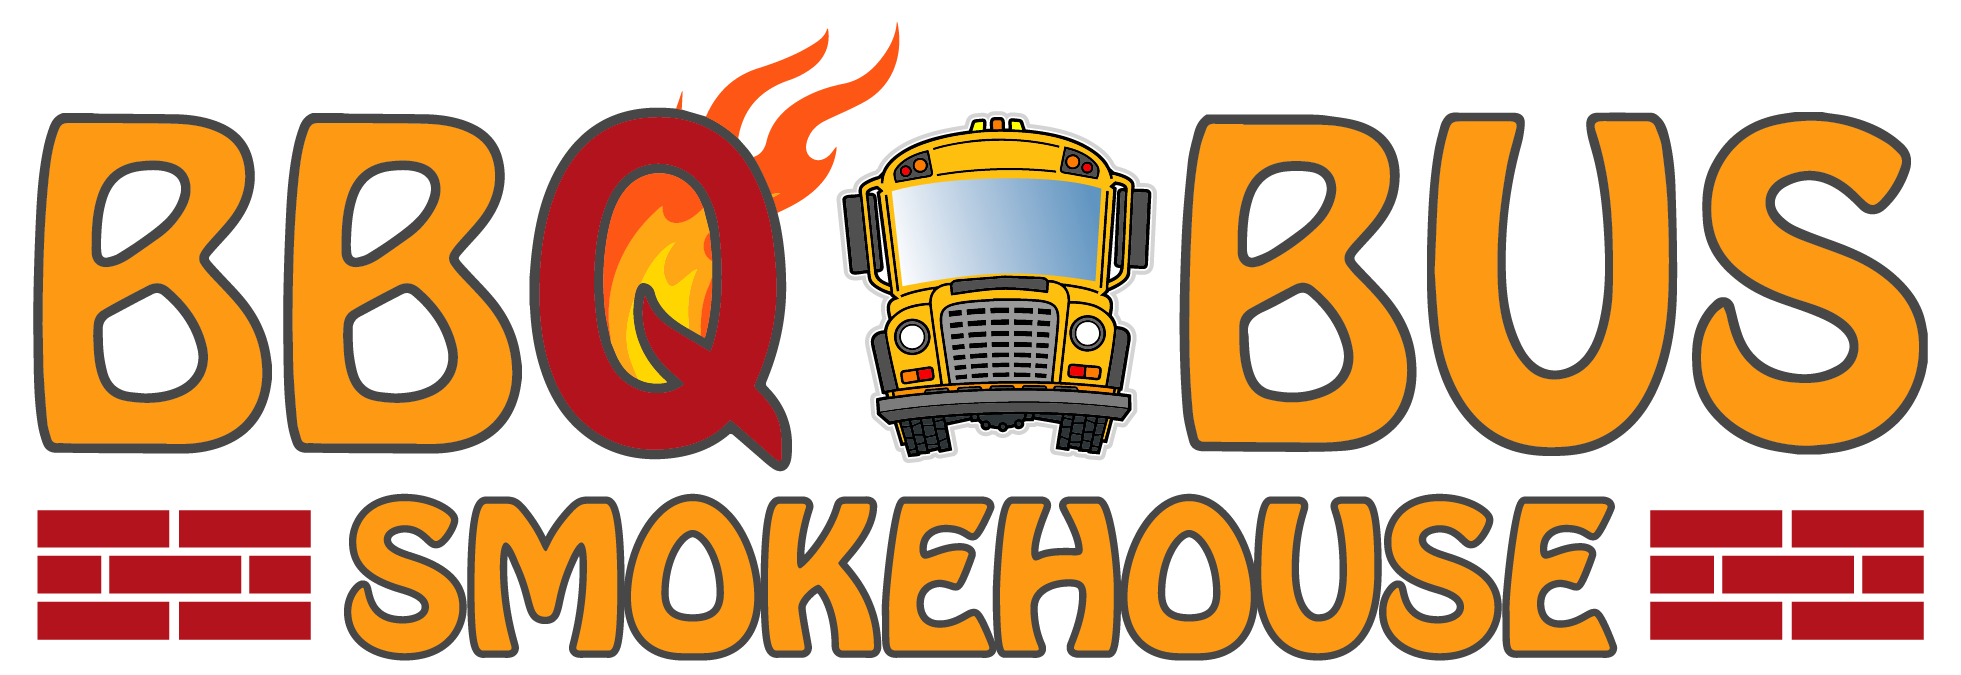 Bbq Bus Smokehouse Catering